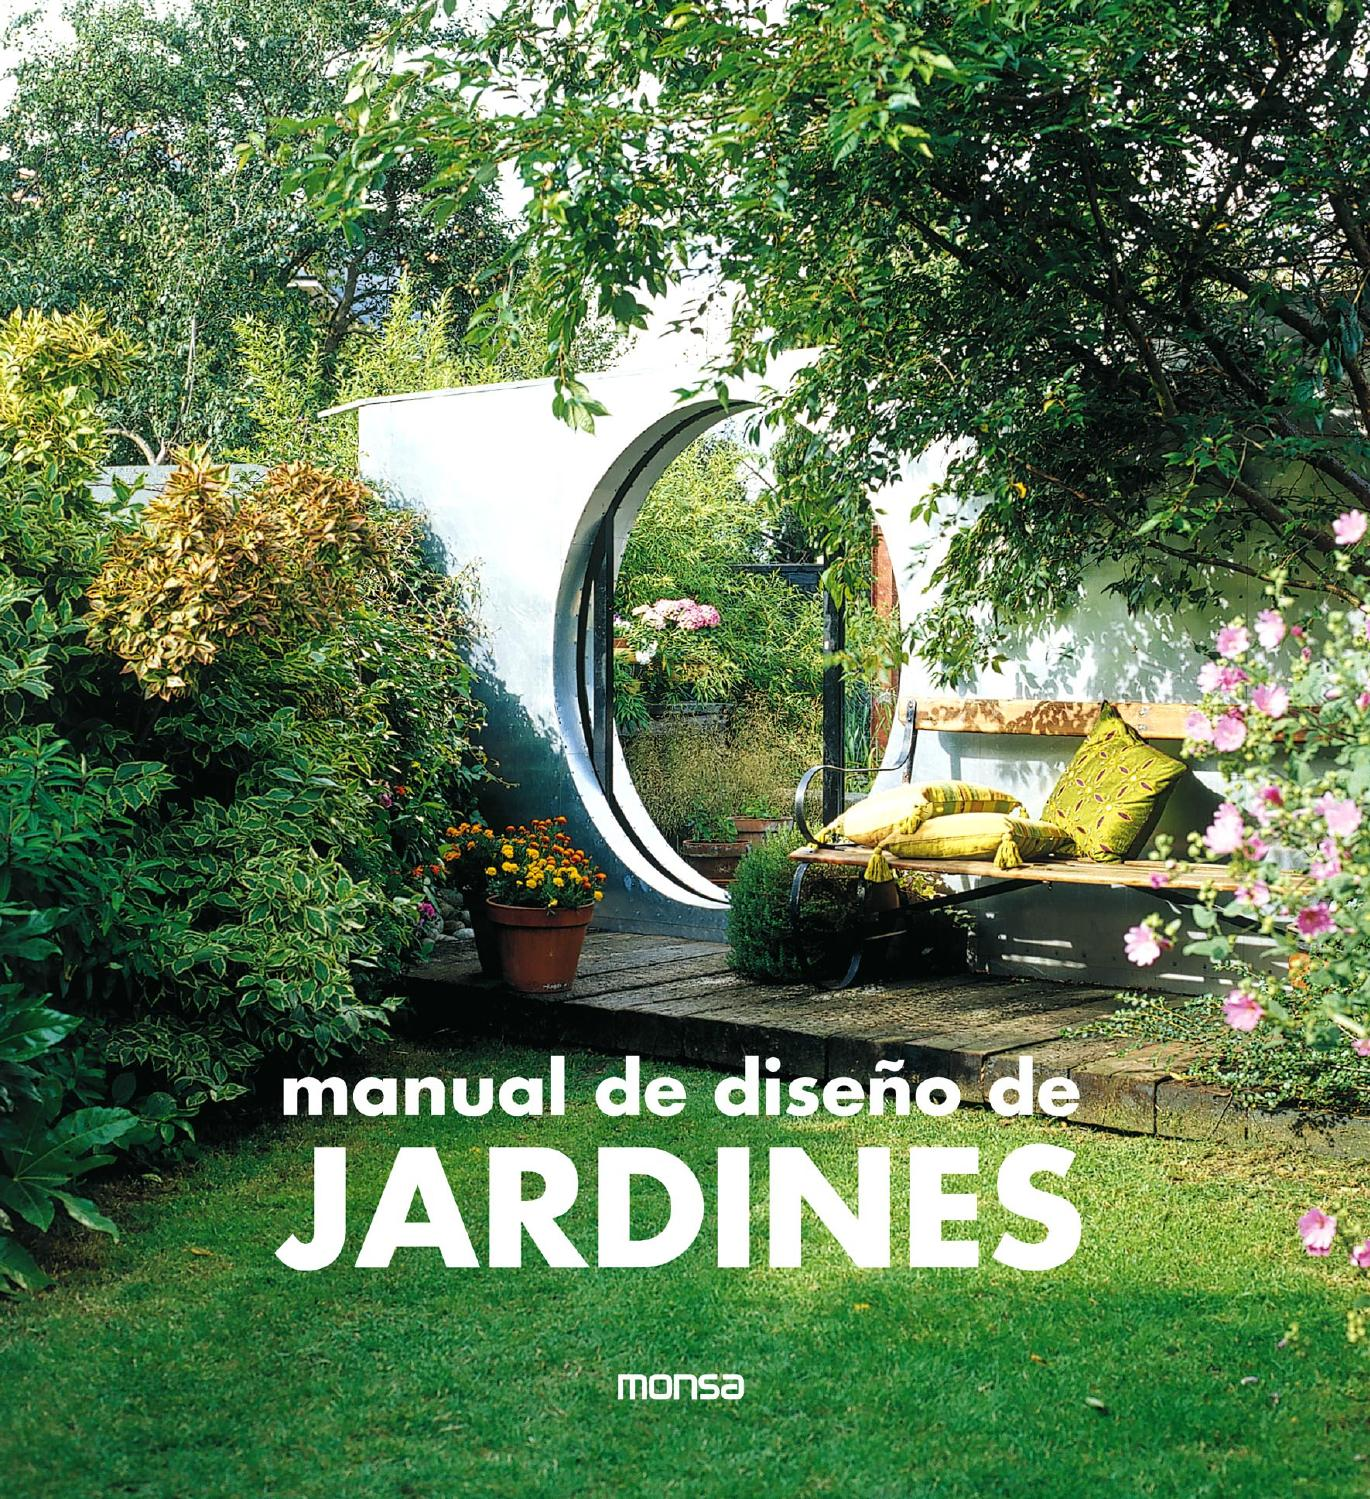 Manual de dise o de jardines by monsa publications issuu - Disenos de jardines ...